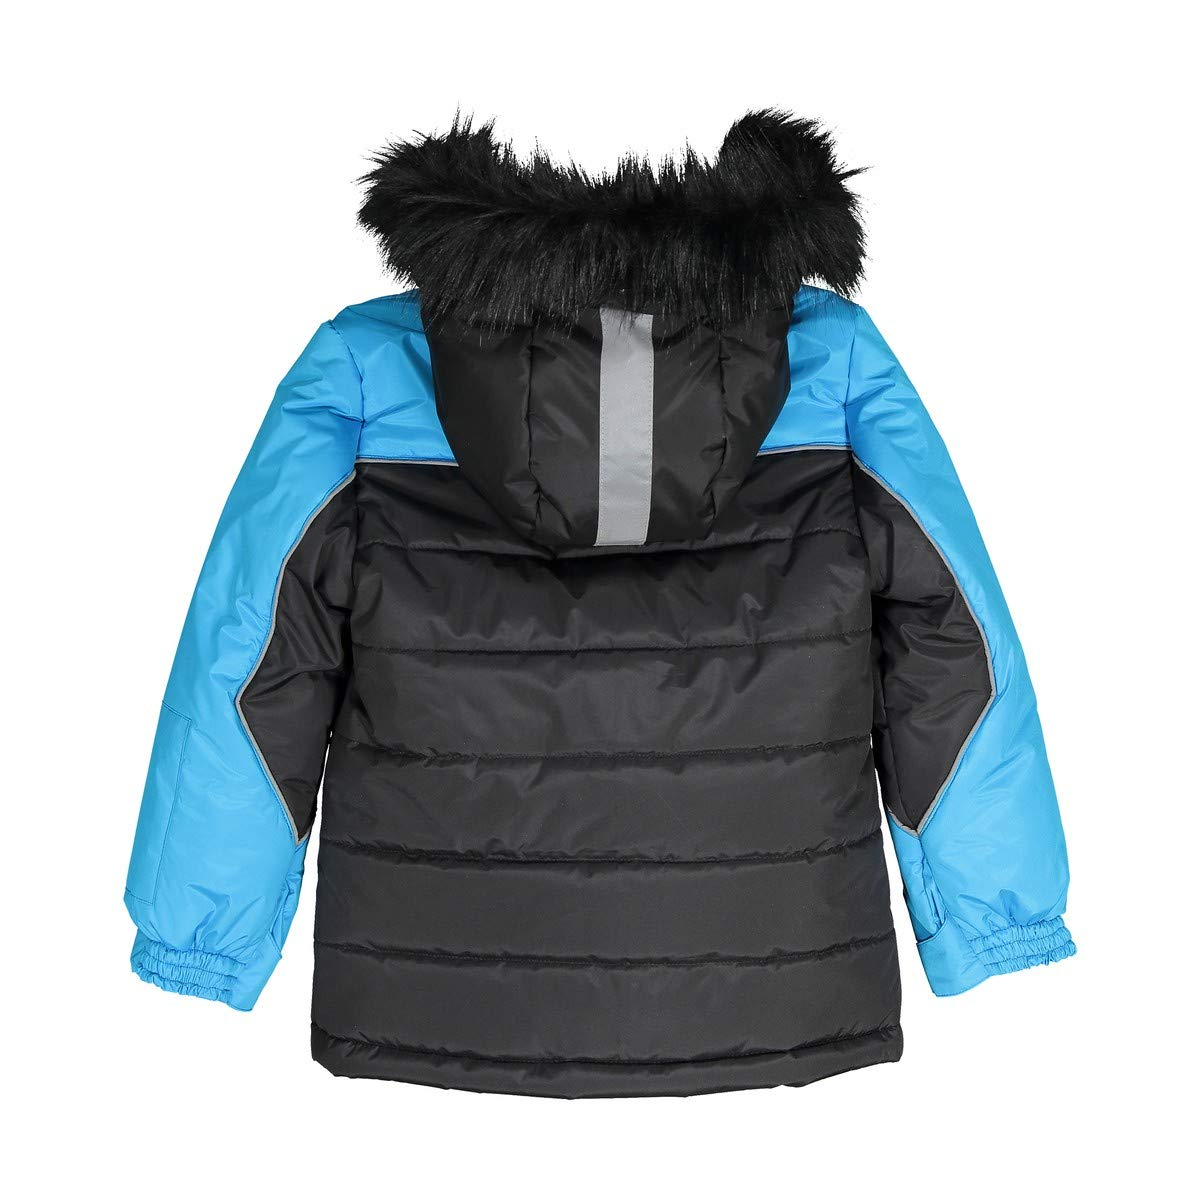 La Redoute Collections Big Boys Ski Jacket, 3-16 Years Blue Size 3 Years by La Redoute (Image #5)